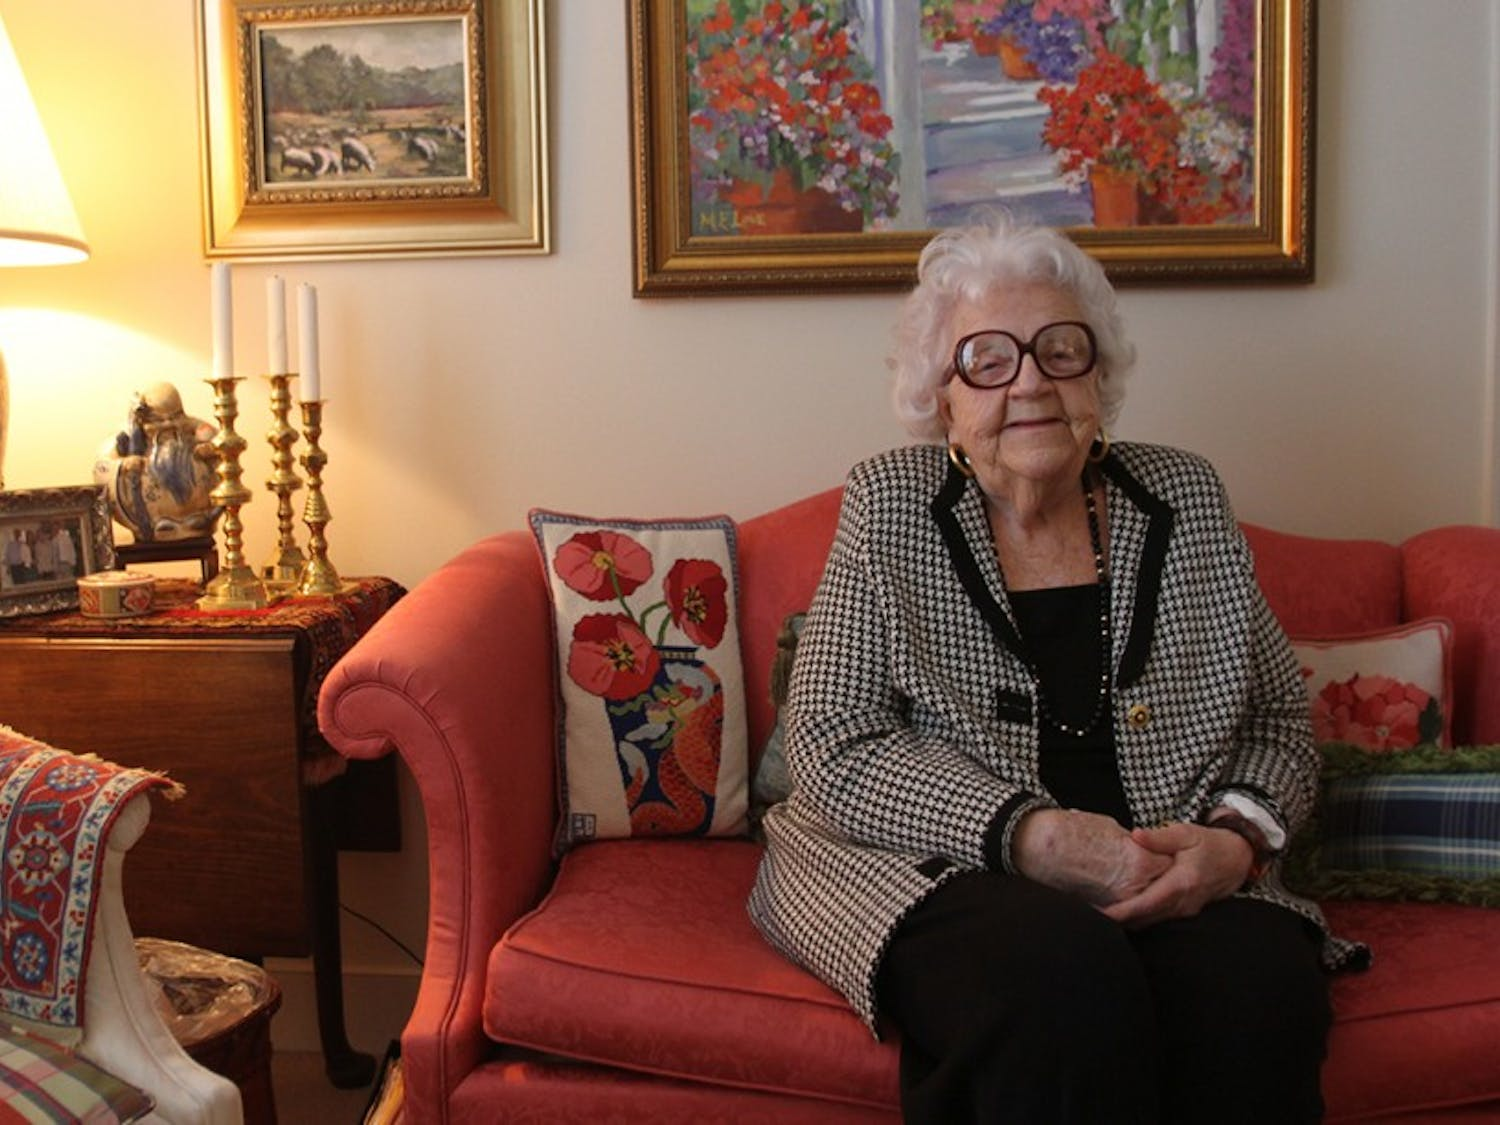 """Maggie Love, 88, paints """"happy paintings"""" that are now on display at University Mall. She has macular degeneration and is starting to lose her eyesight, which makes painting more difficult. She continues to paint and now does more abstract work. Love poses with her artwork in her home at Galloway Ridge retirement community at Fearrington."""